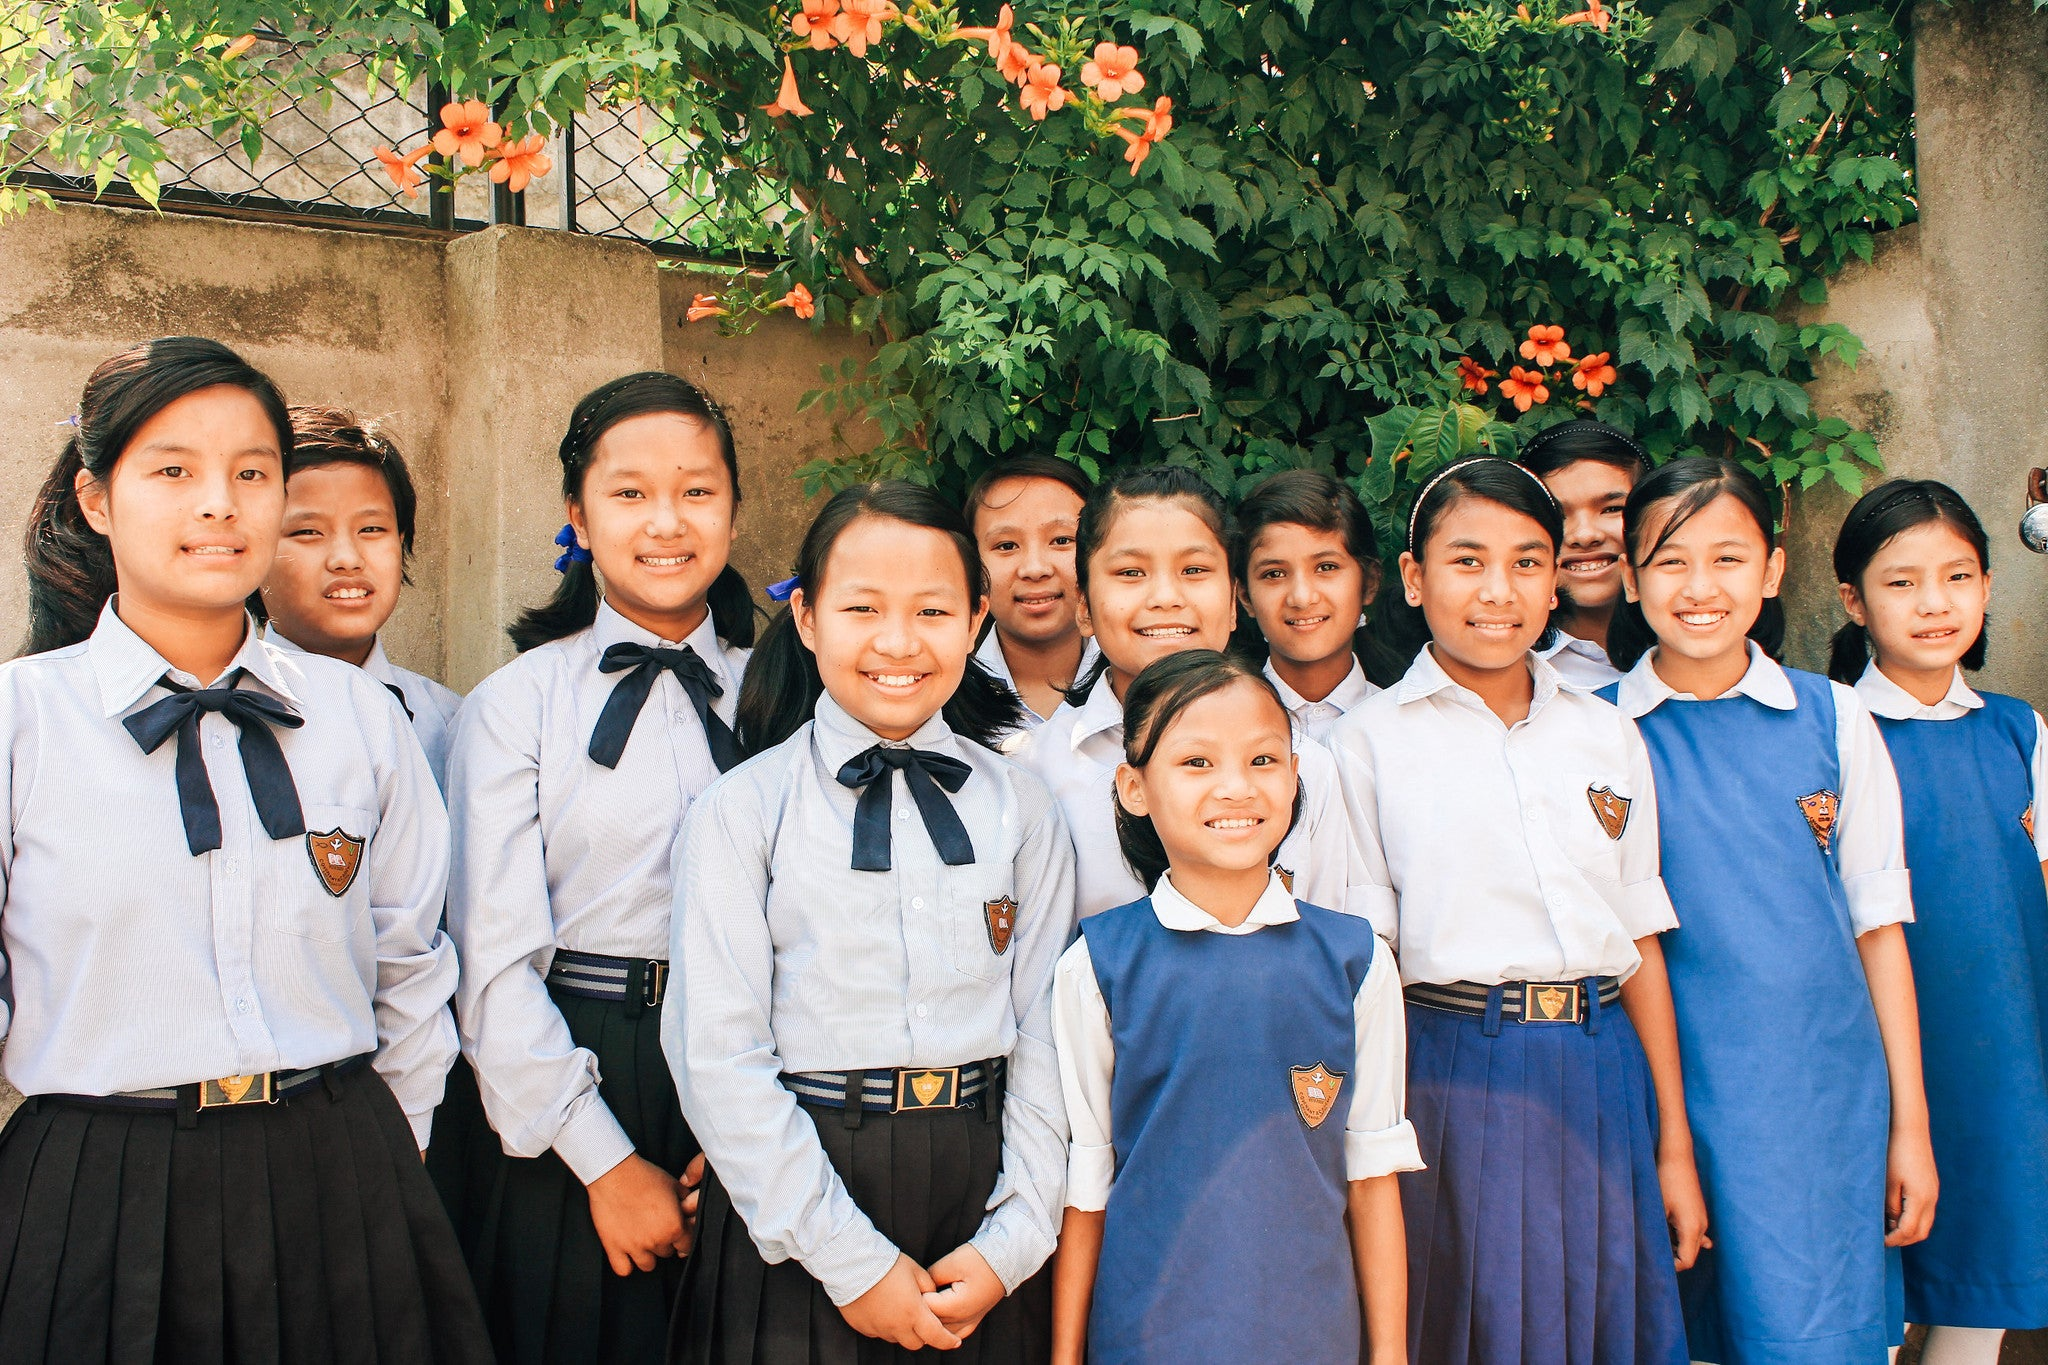 Nepal: 11 girls rescued from trafficking situations, orphan home students begin new school year